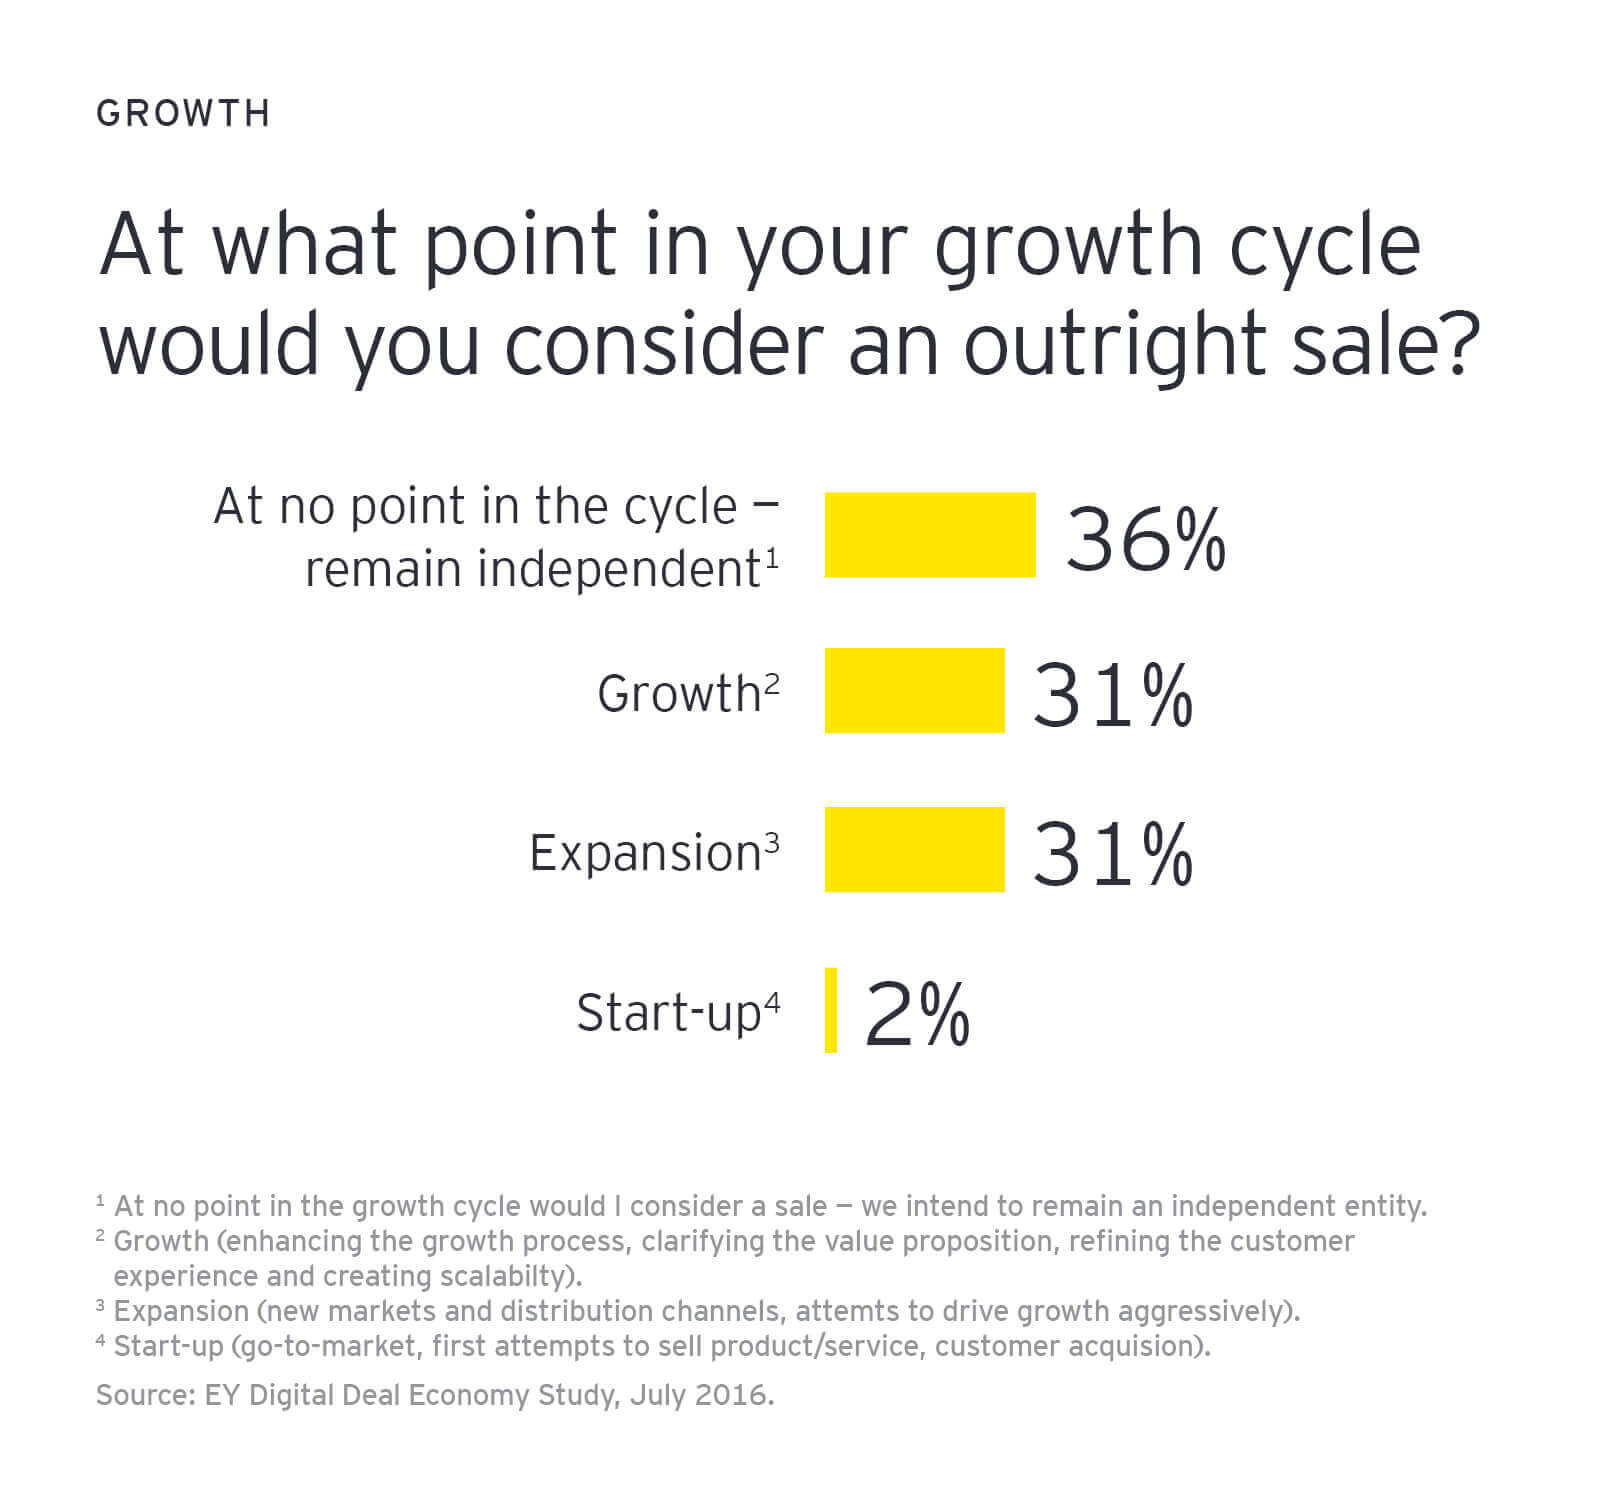 At what point in your growth cycle would you consider an outright sale?